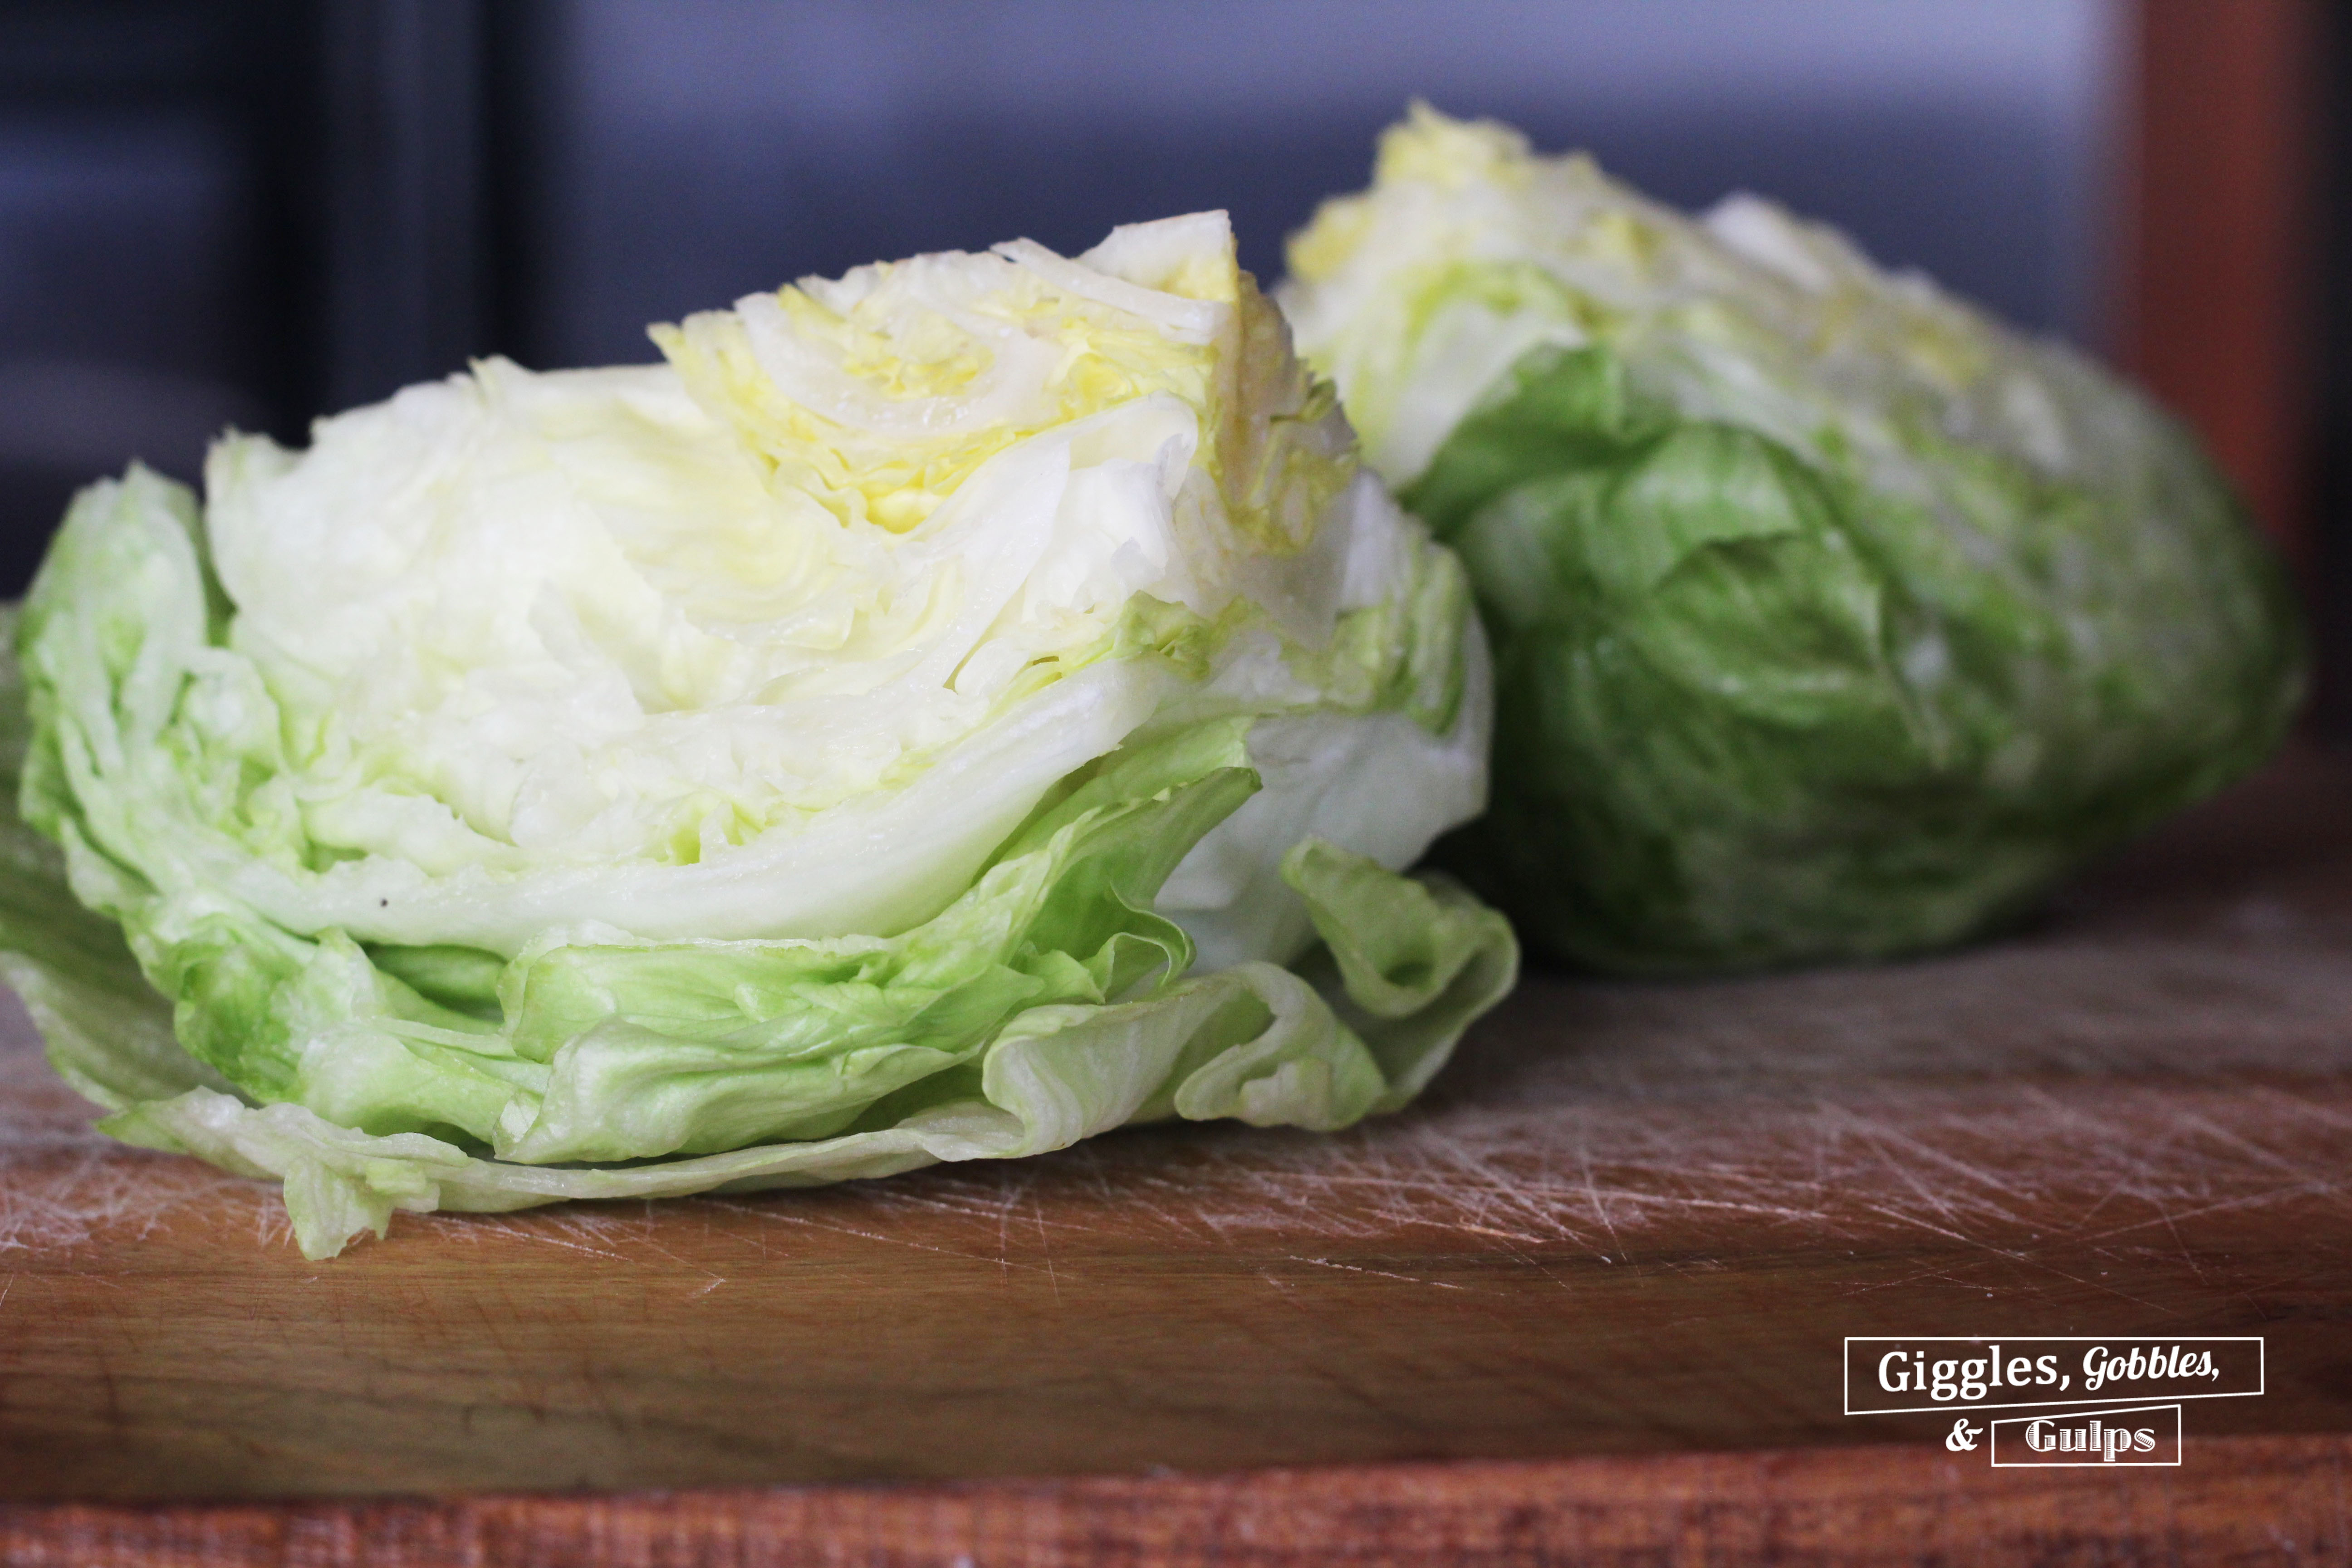 Break out the grill and enjoy Summer seafood and vegetables with this easy and elegant Grilled Shrimp Iceberg Lettuce Wedge Salad